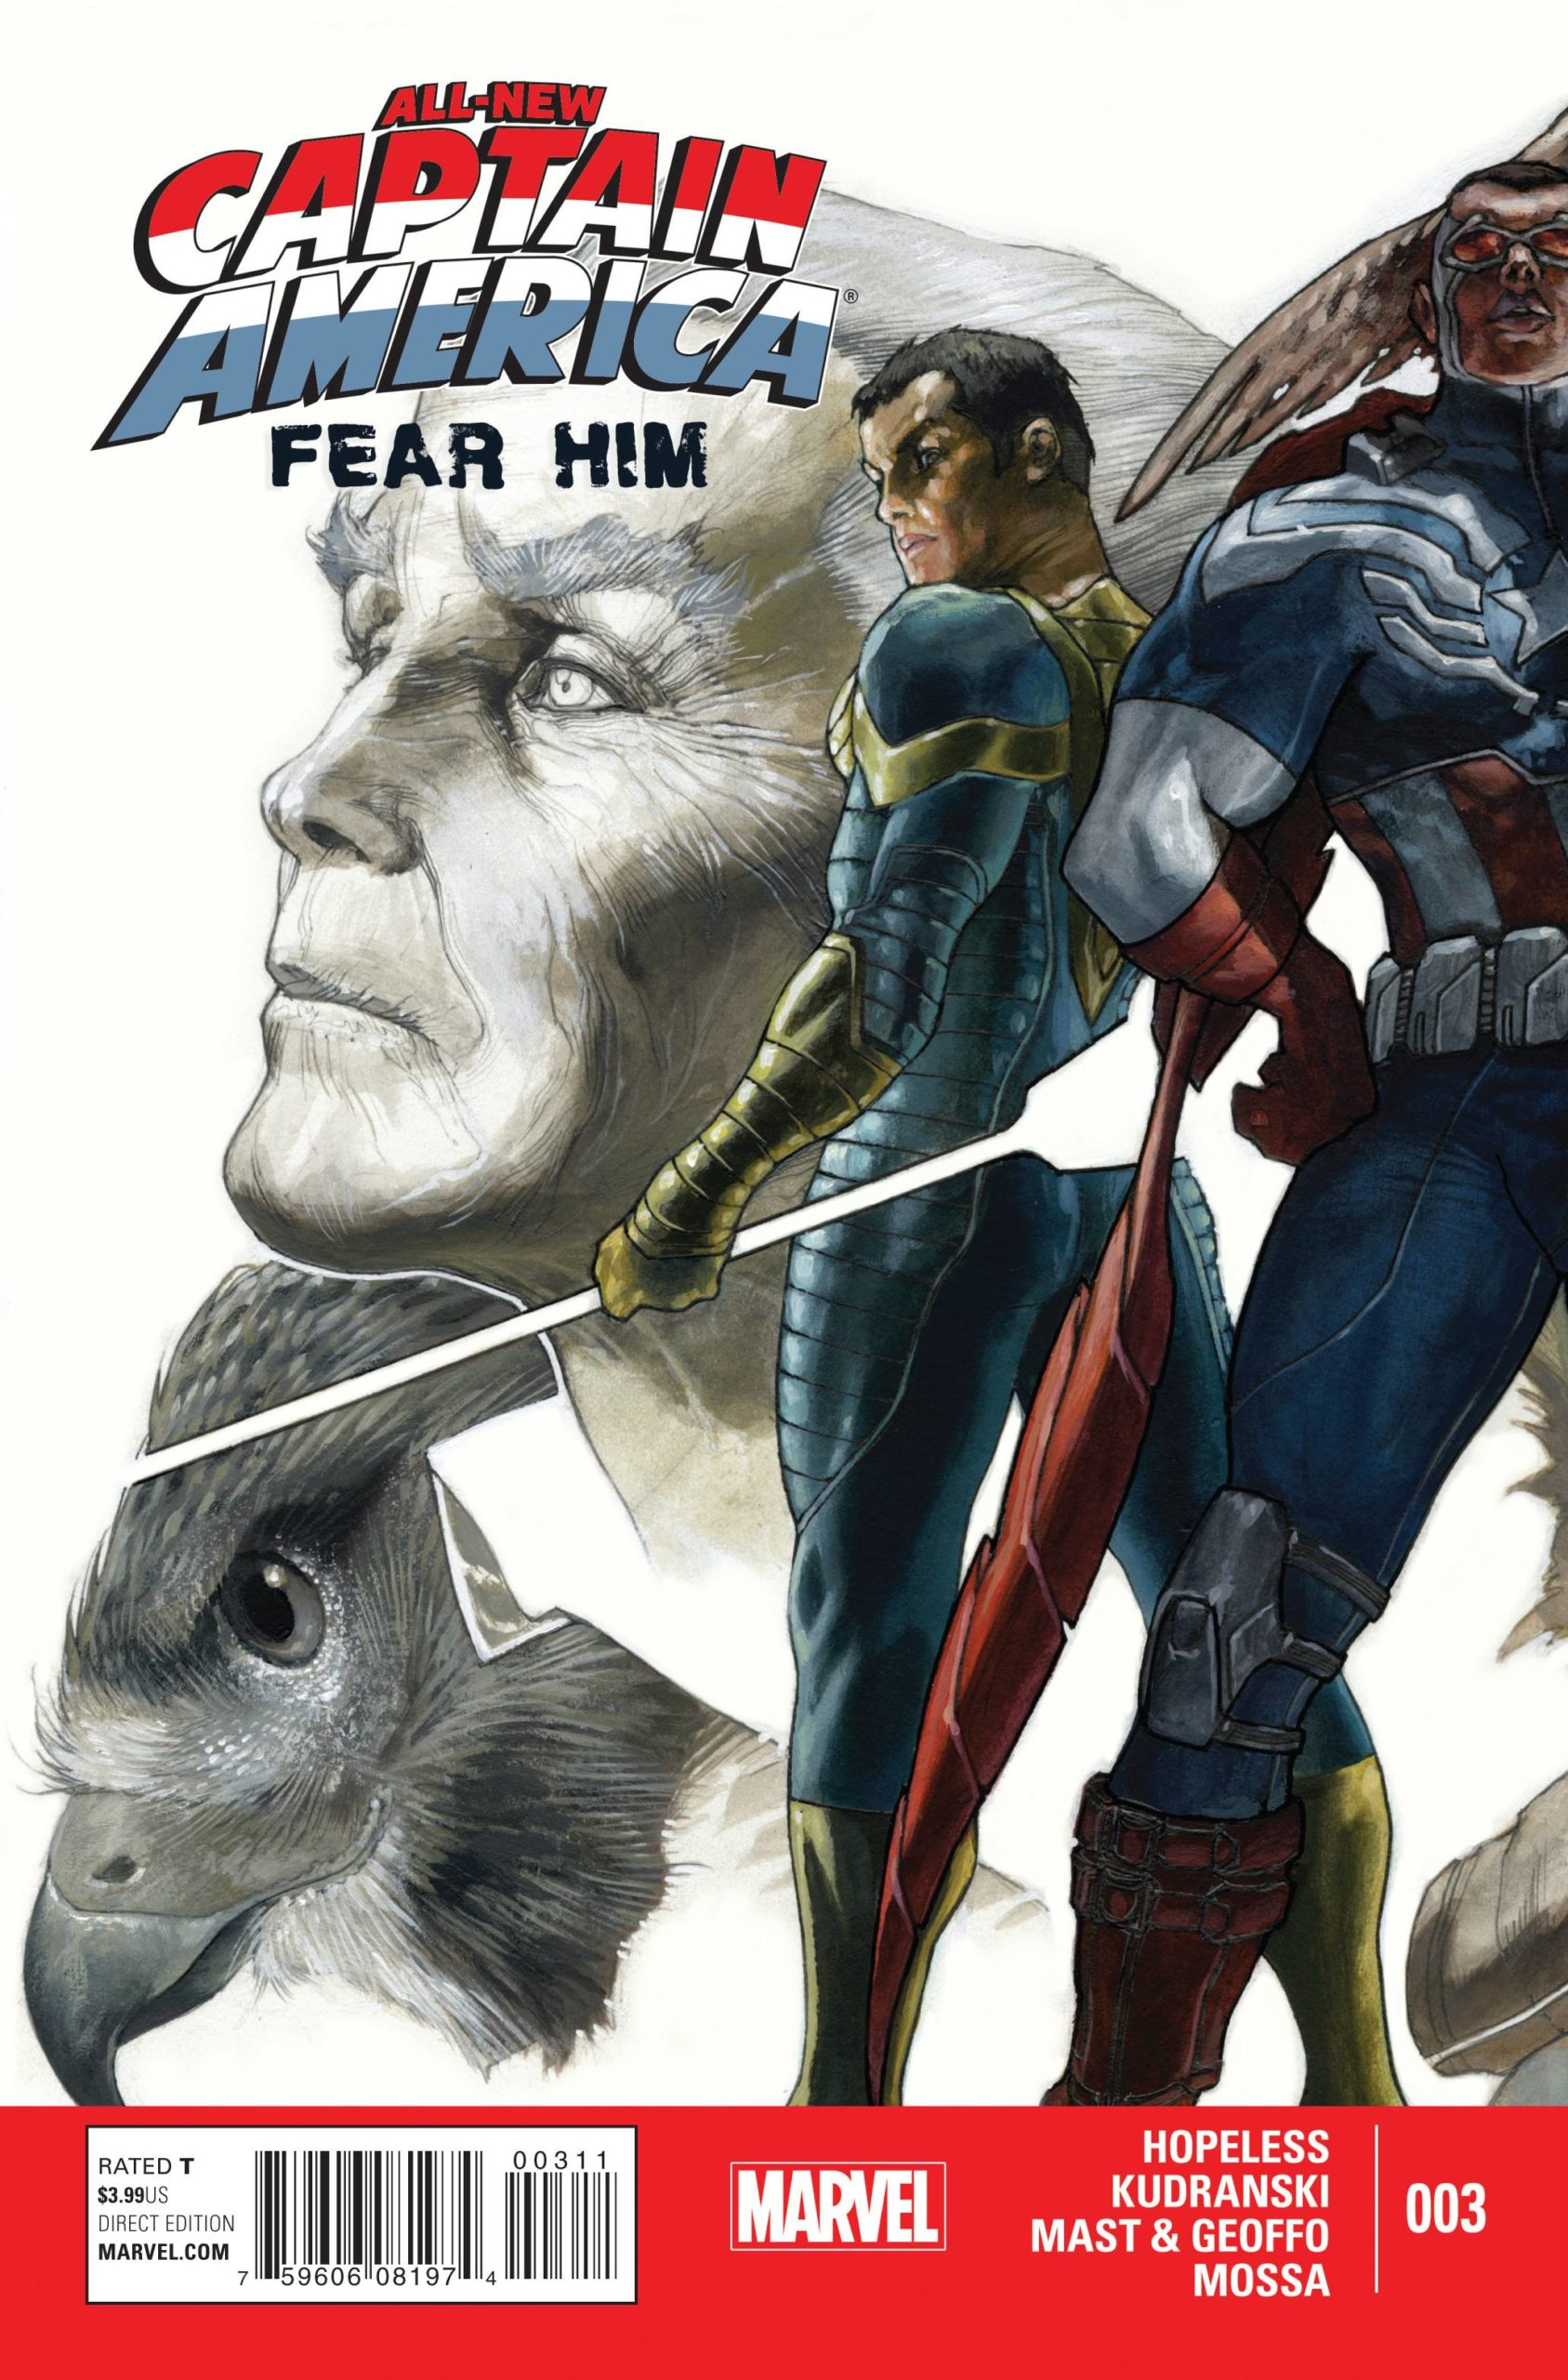 ALL NEW CAPTAIN AMERICA FEAR HIM (MS 4)